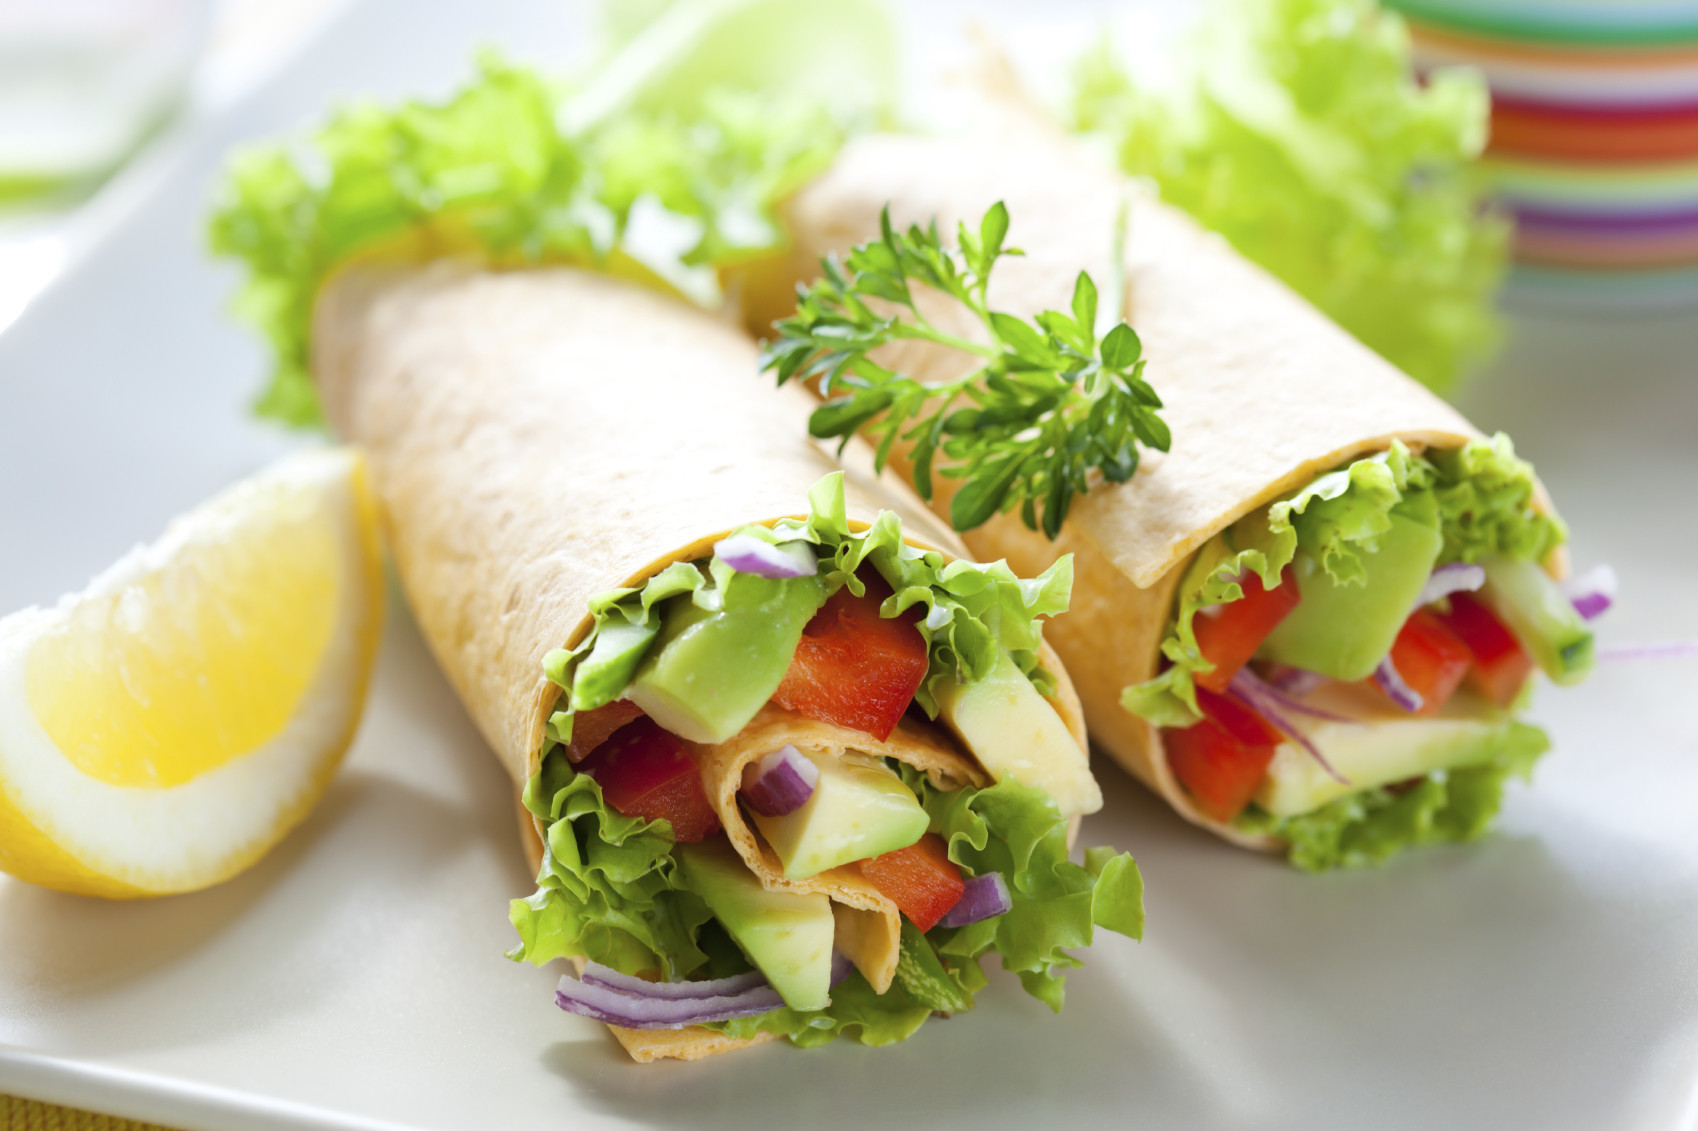 Tasty Healthy Lunches  3FatChicks on a Diet – Diet & Weight Loss Support